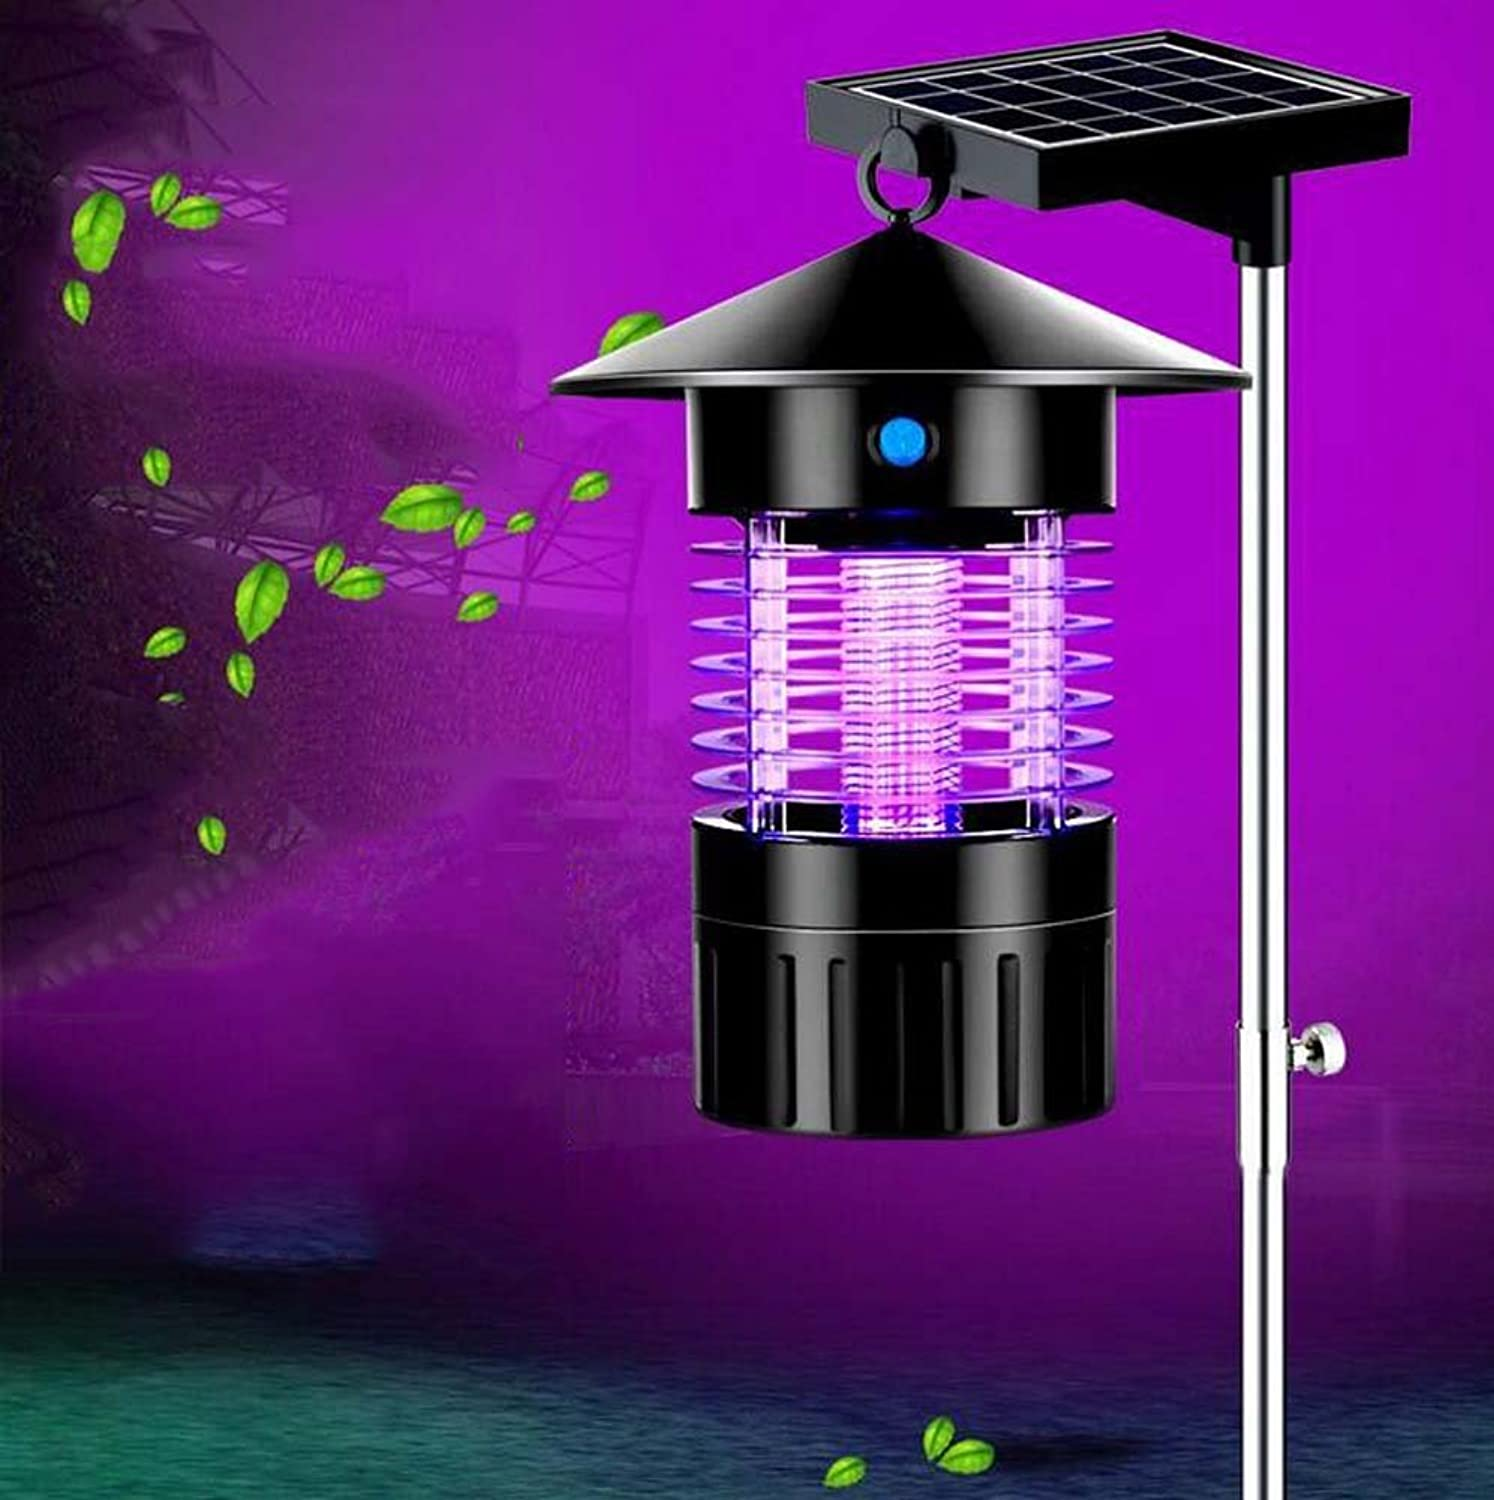 Outdoor Solar Mosquito Lamp, UltraQuiet, No Radiation, Waterproof Mosquitto Killer, Bug Zapper, Professional Electronic Insect Killer, Dual ModesIllumination Mosquito Control, USB Charging